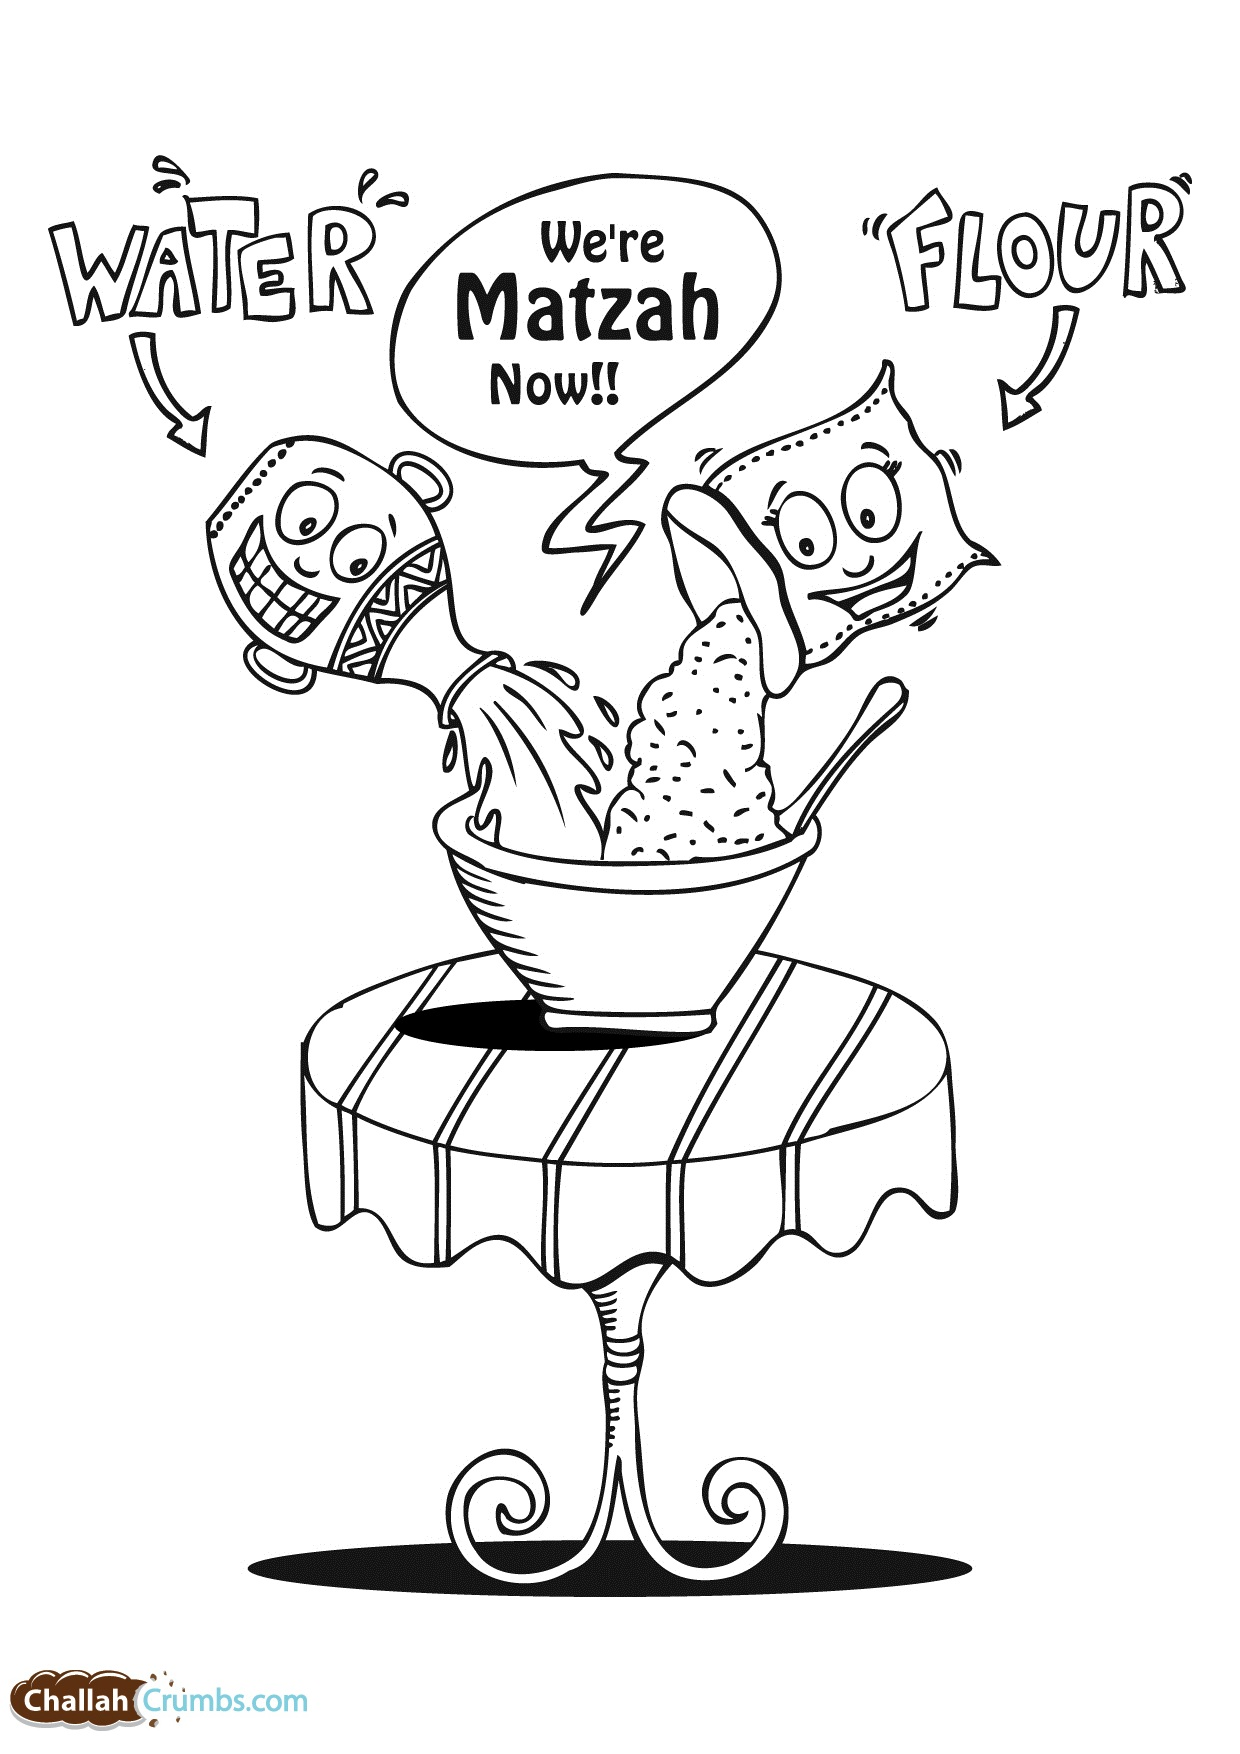 pesach archives - challah crumbs - Passover Coloring Pages Printable